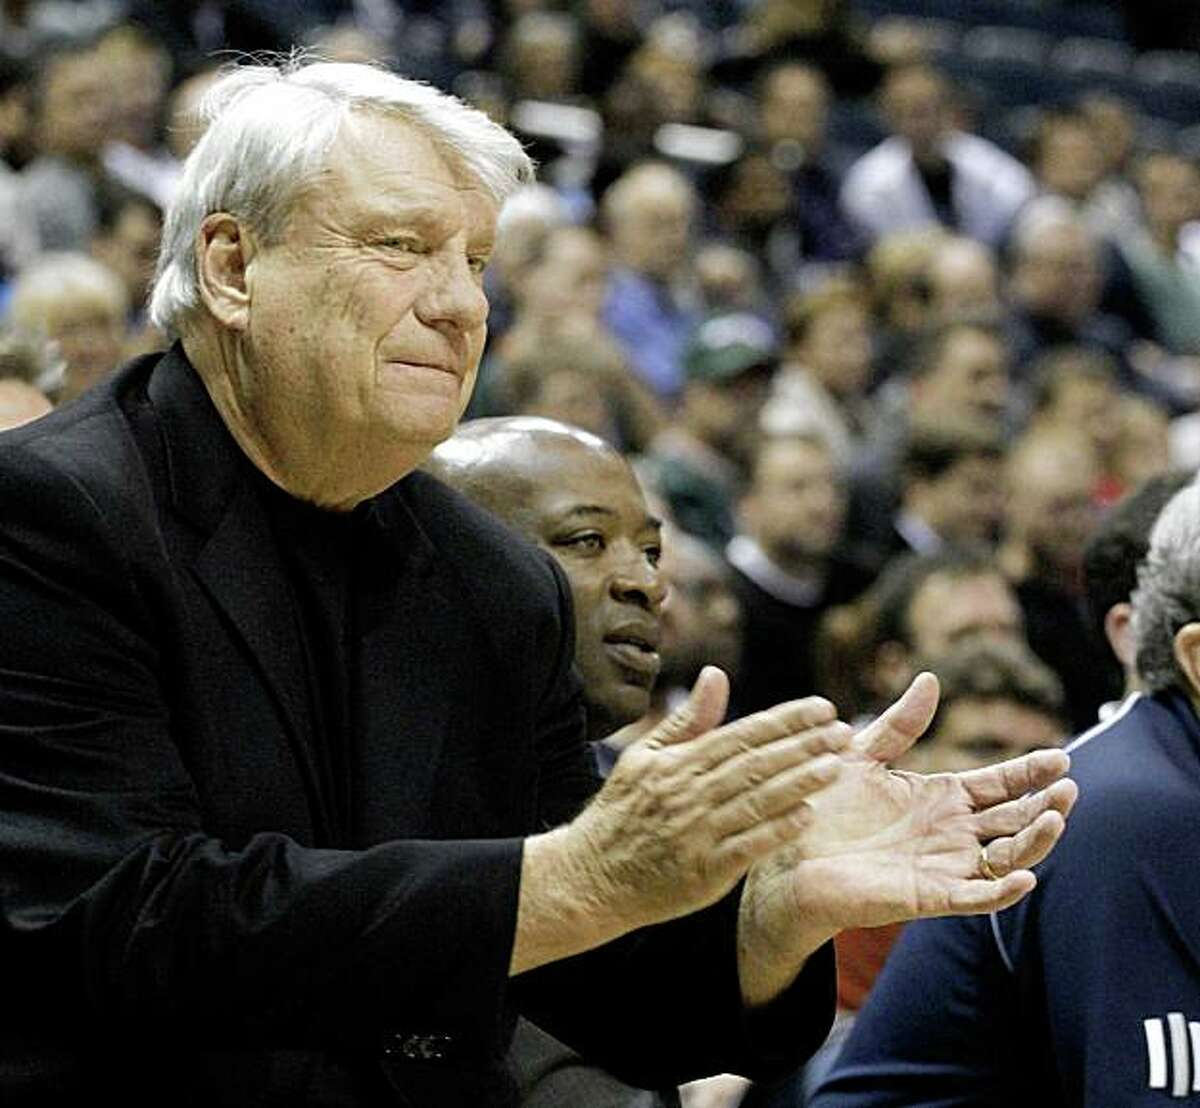 Golden State Warriors Head Coach Don Nelson cheers on his team against the Milwaukee Bucks in the first half of an NBA basketball game Saturday, Nov. 14, 2009, in Milwaukee. (AP Photo/Jeffrey Phelps)